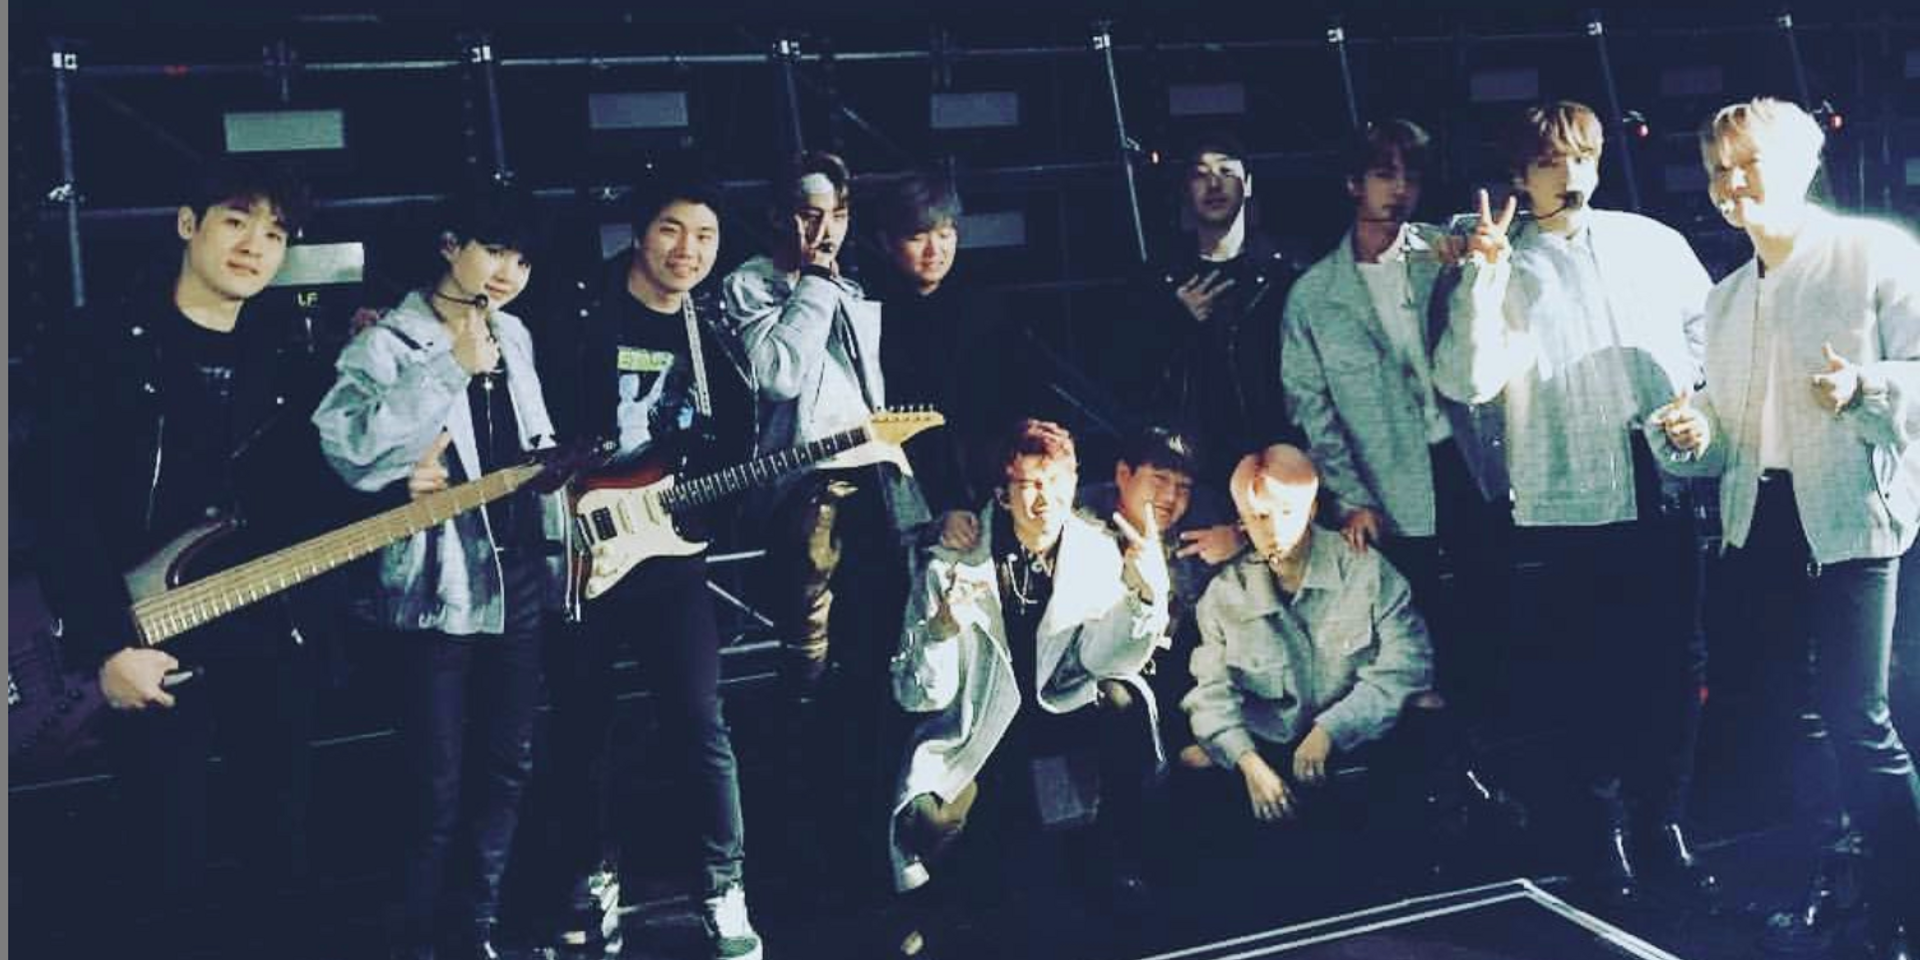 Ghost band drummer khaN shares memories of BTS' Wings Tour